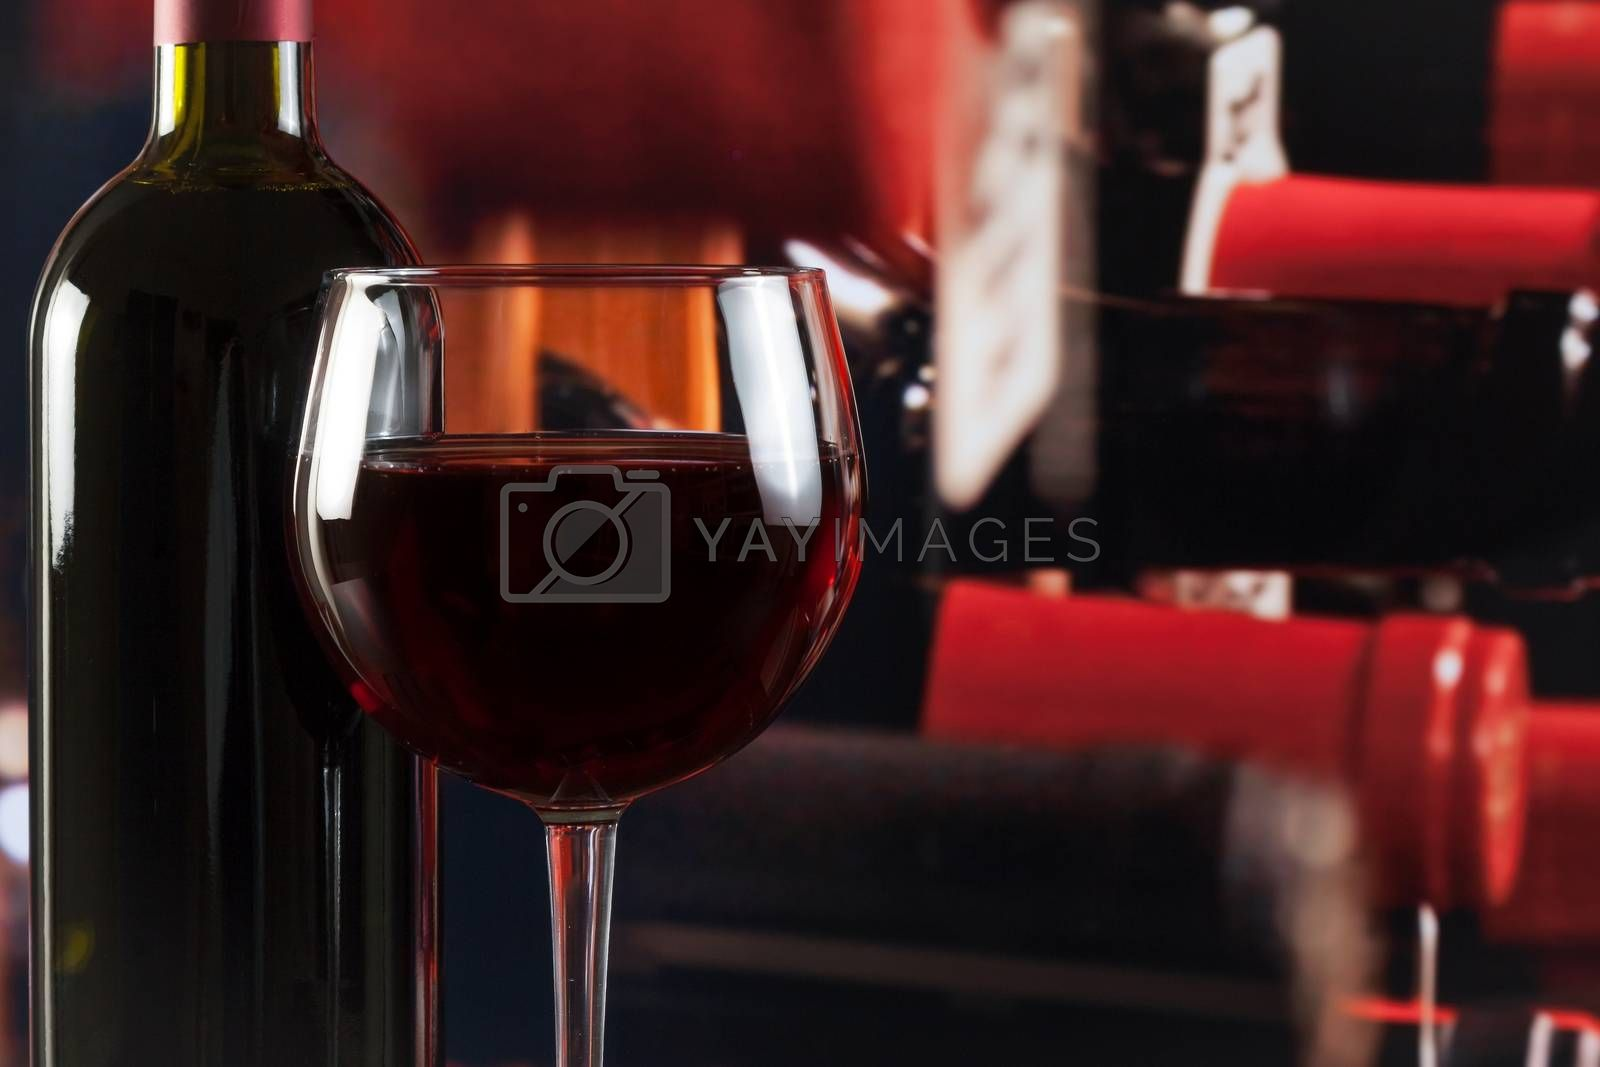 wine glass near bottle in wine cellar with space for text by donfiore